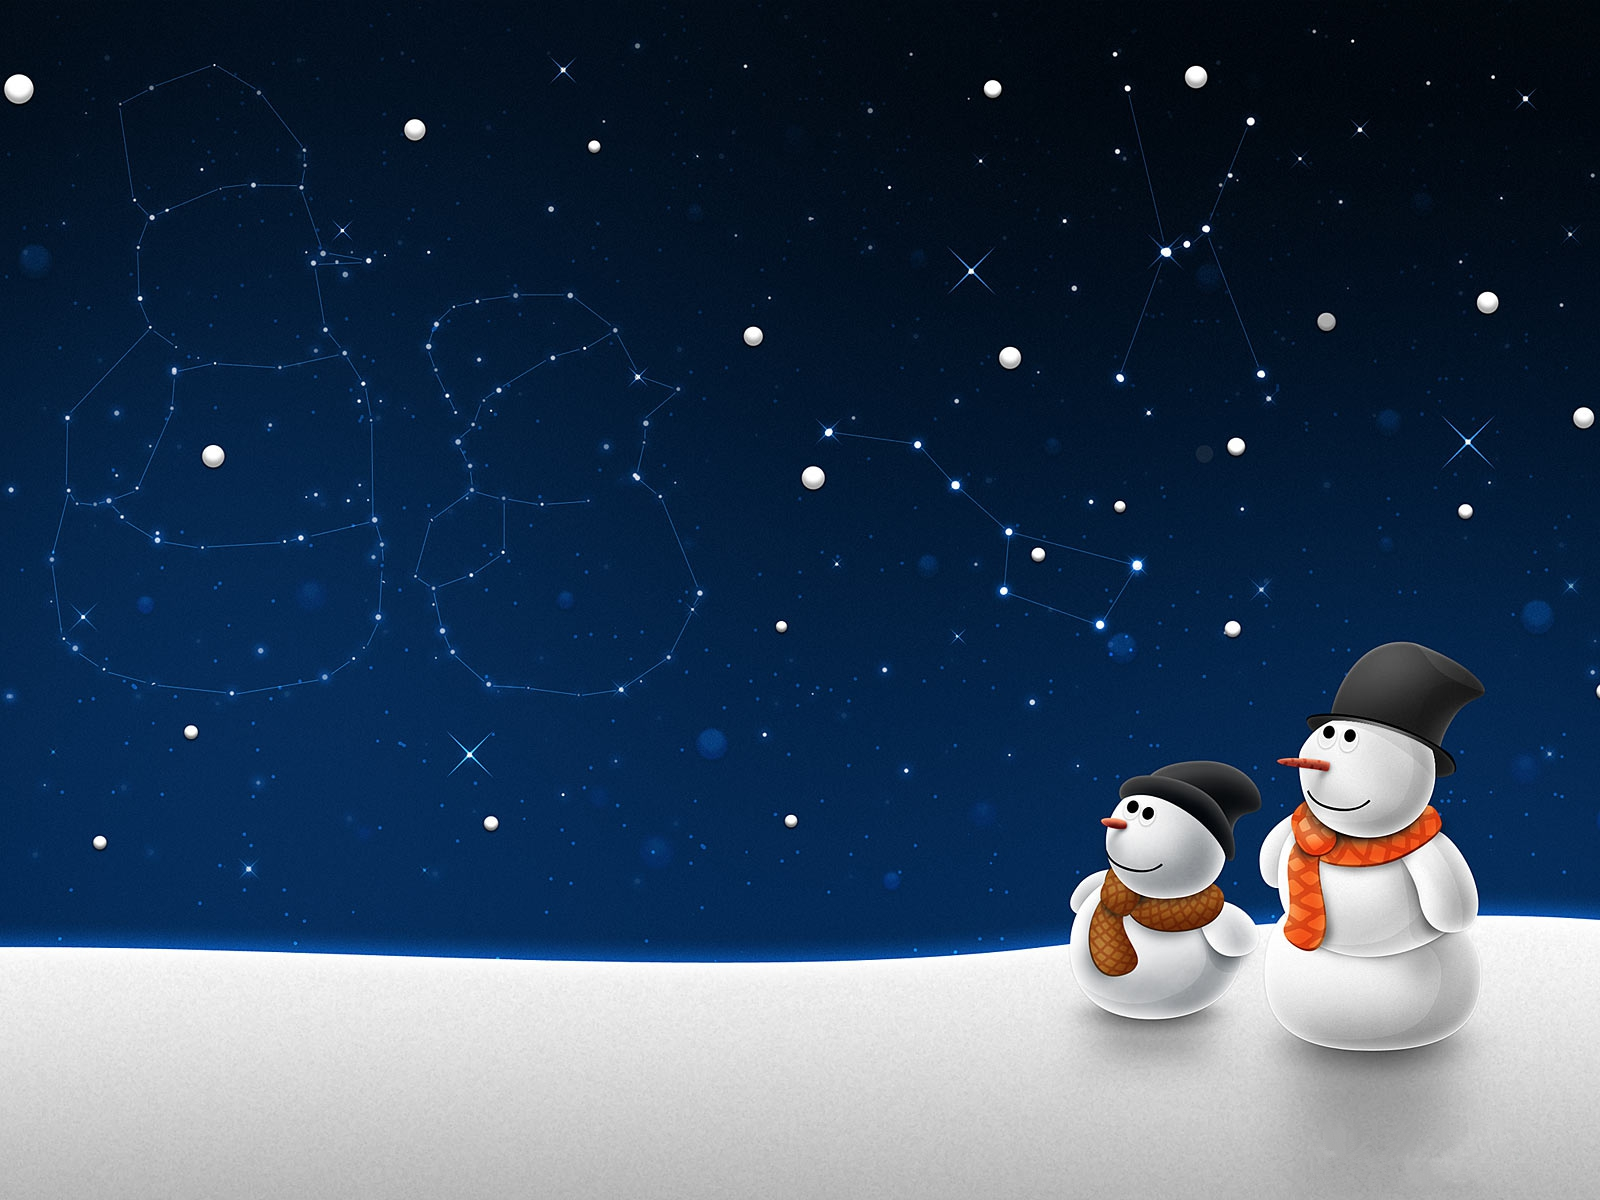 Xmas Snowman Desktop Backgrounds